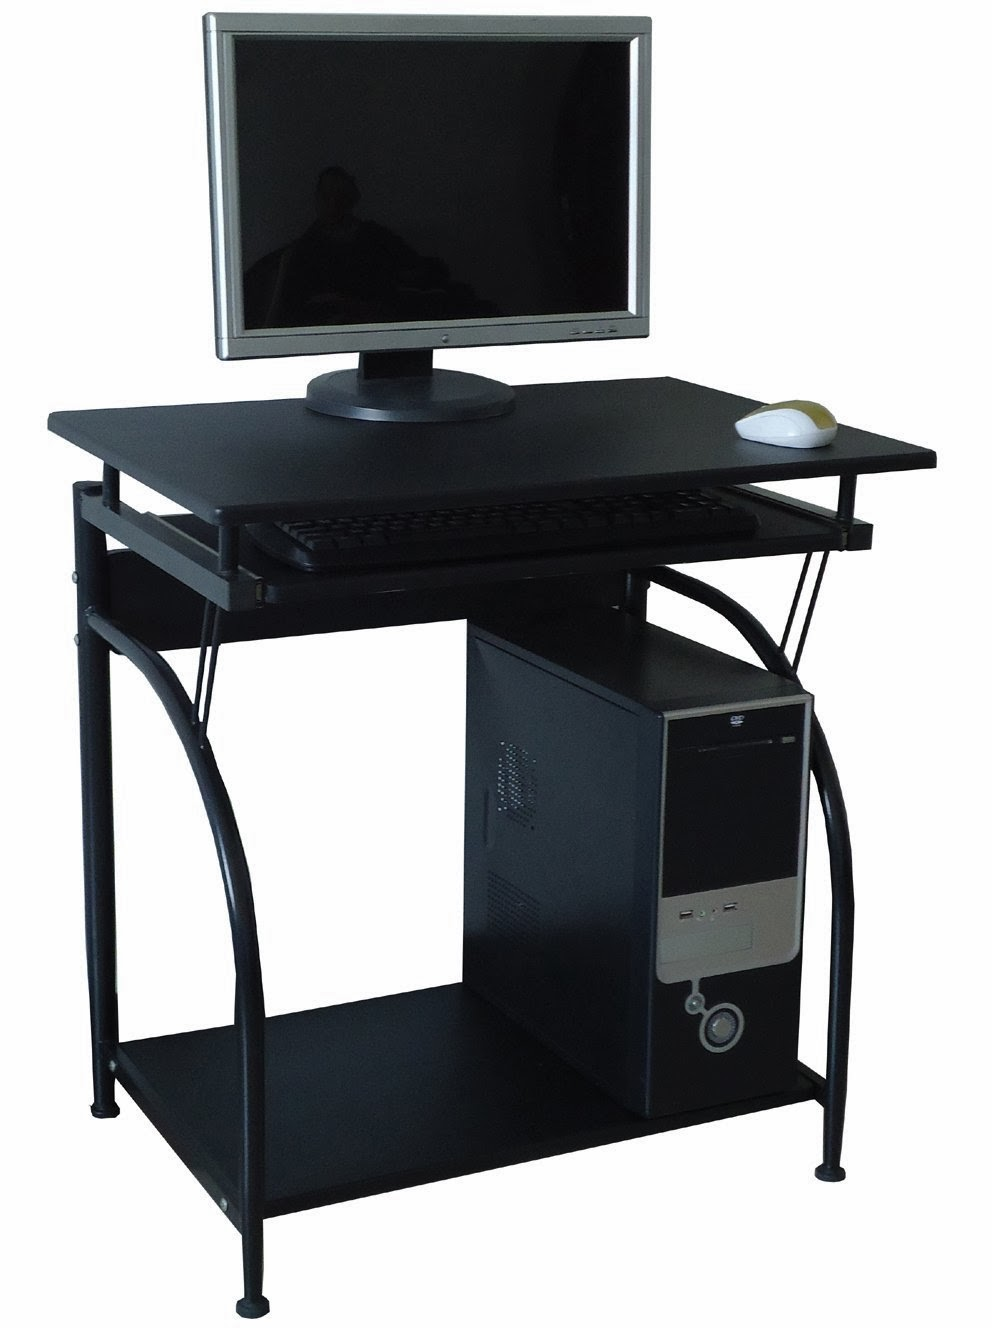 Home Office Computer Desks For Sale: Computer Desks For Sale